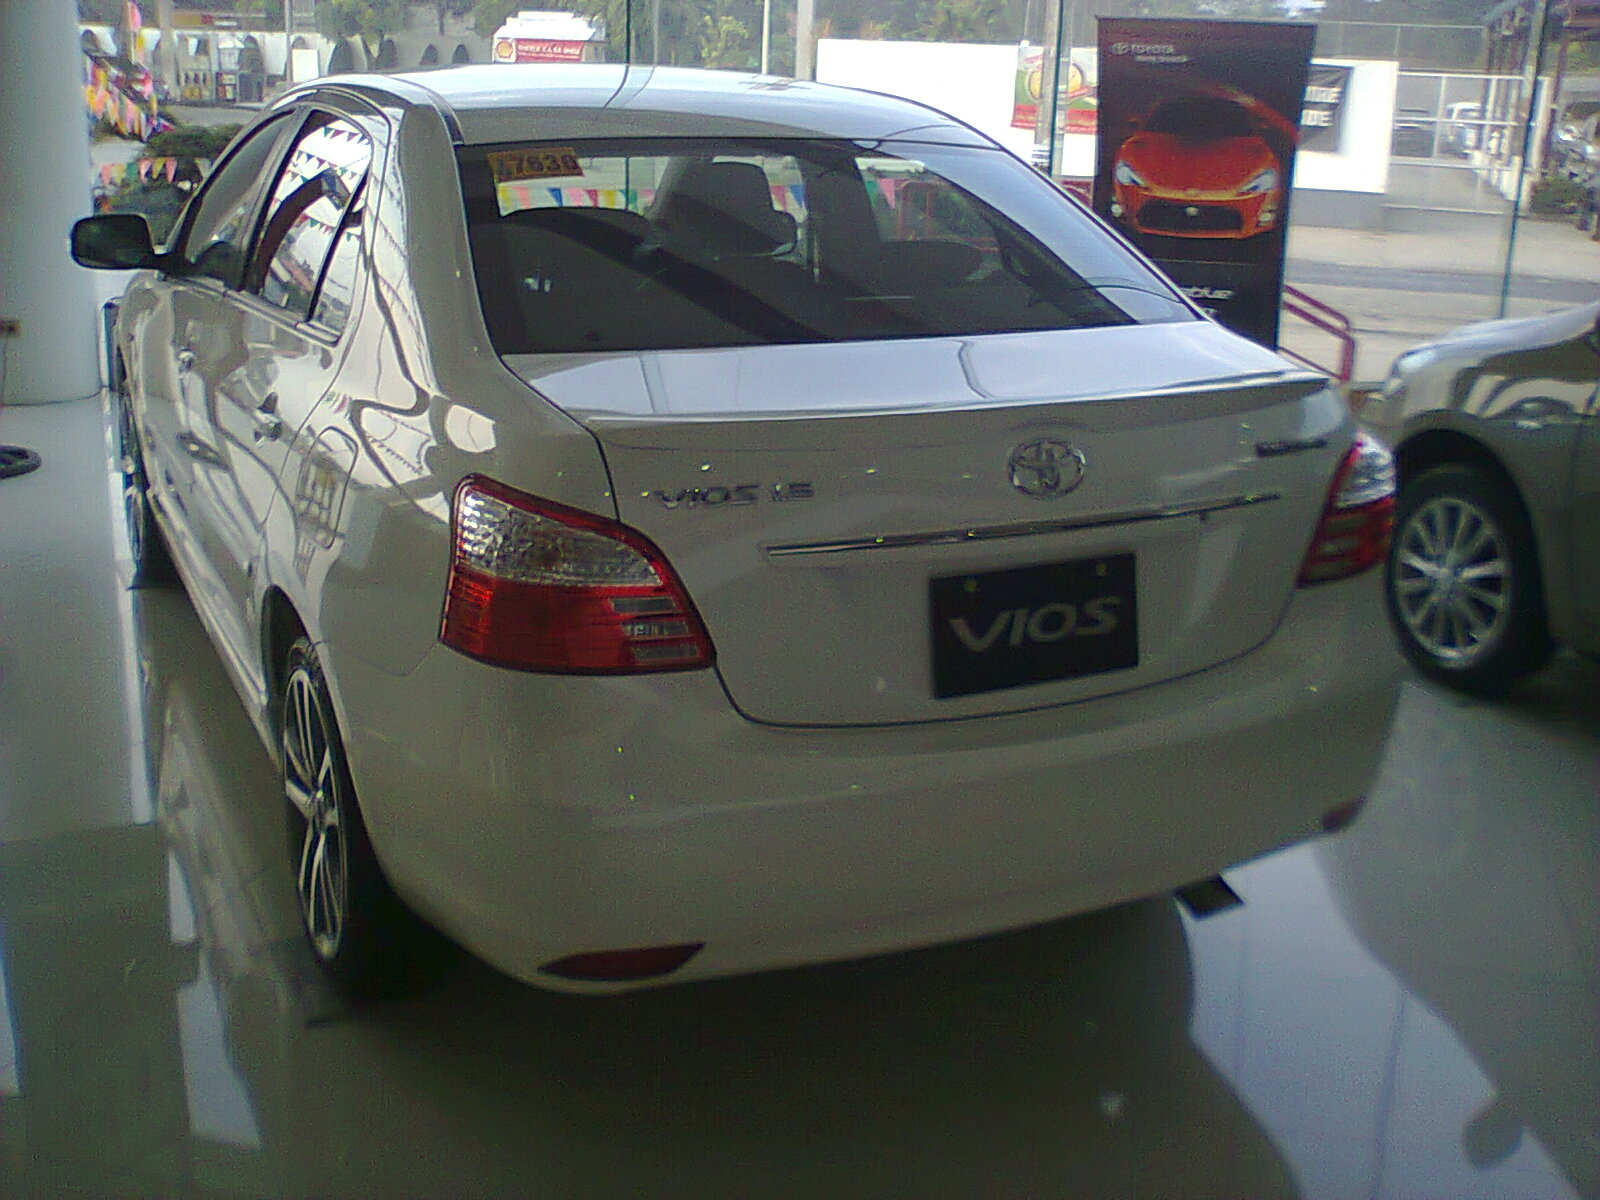 Toyota Vios 1.5 G TRD | Flickr - Photo Sharing!